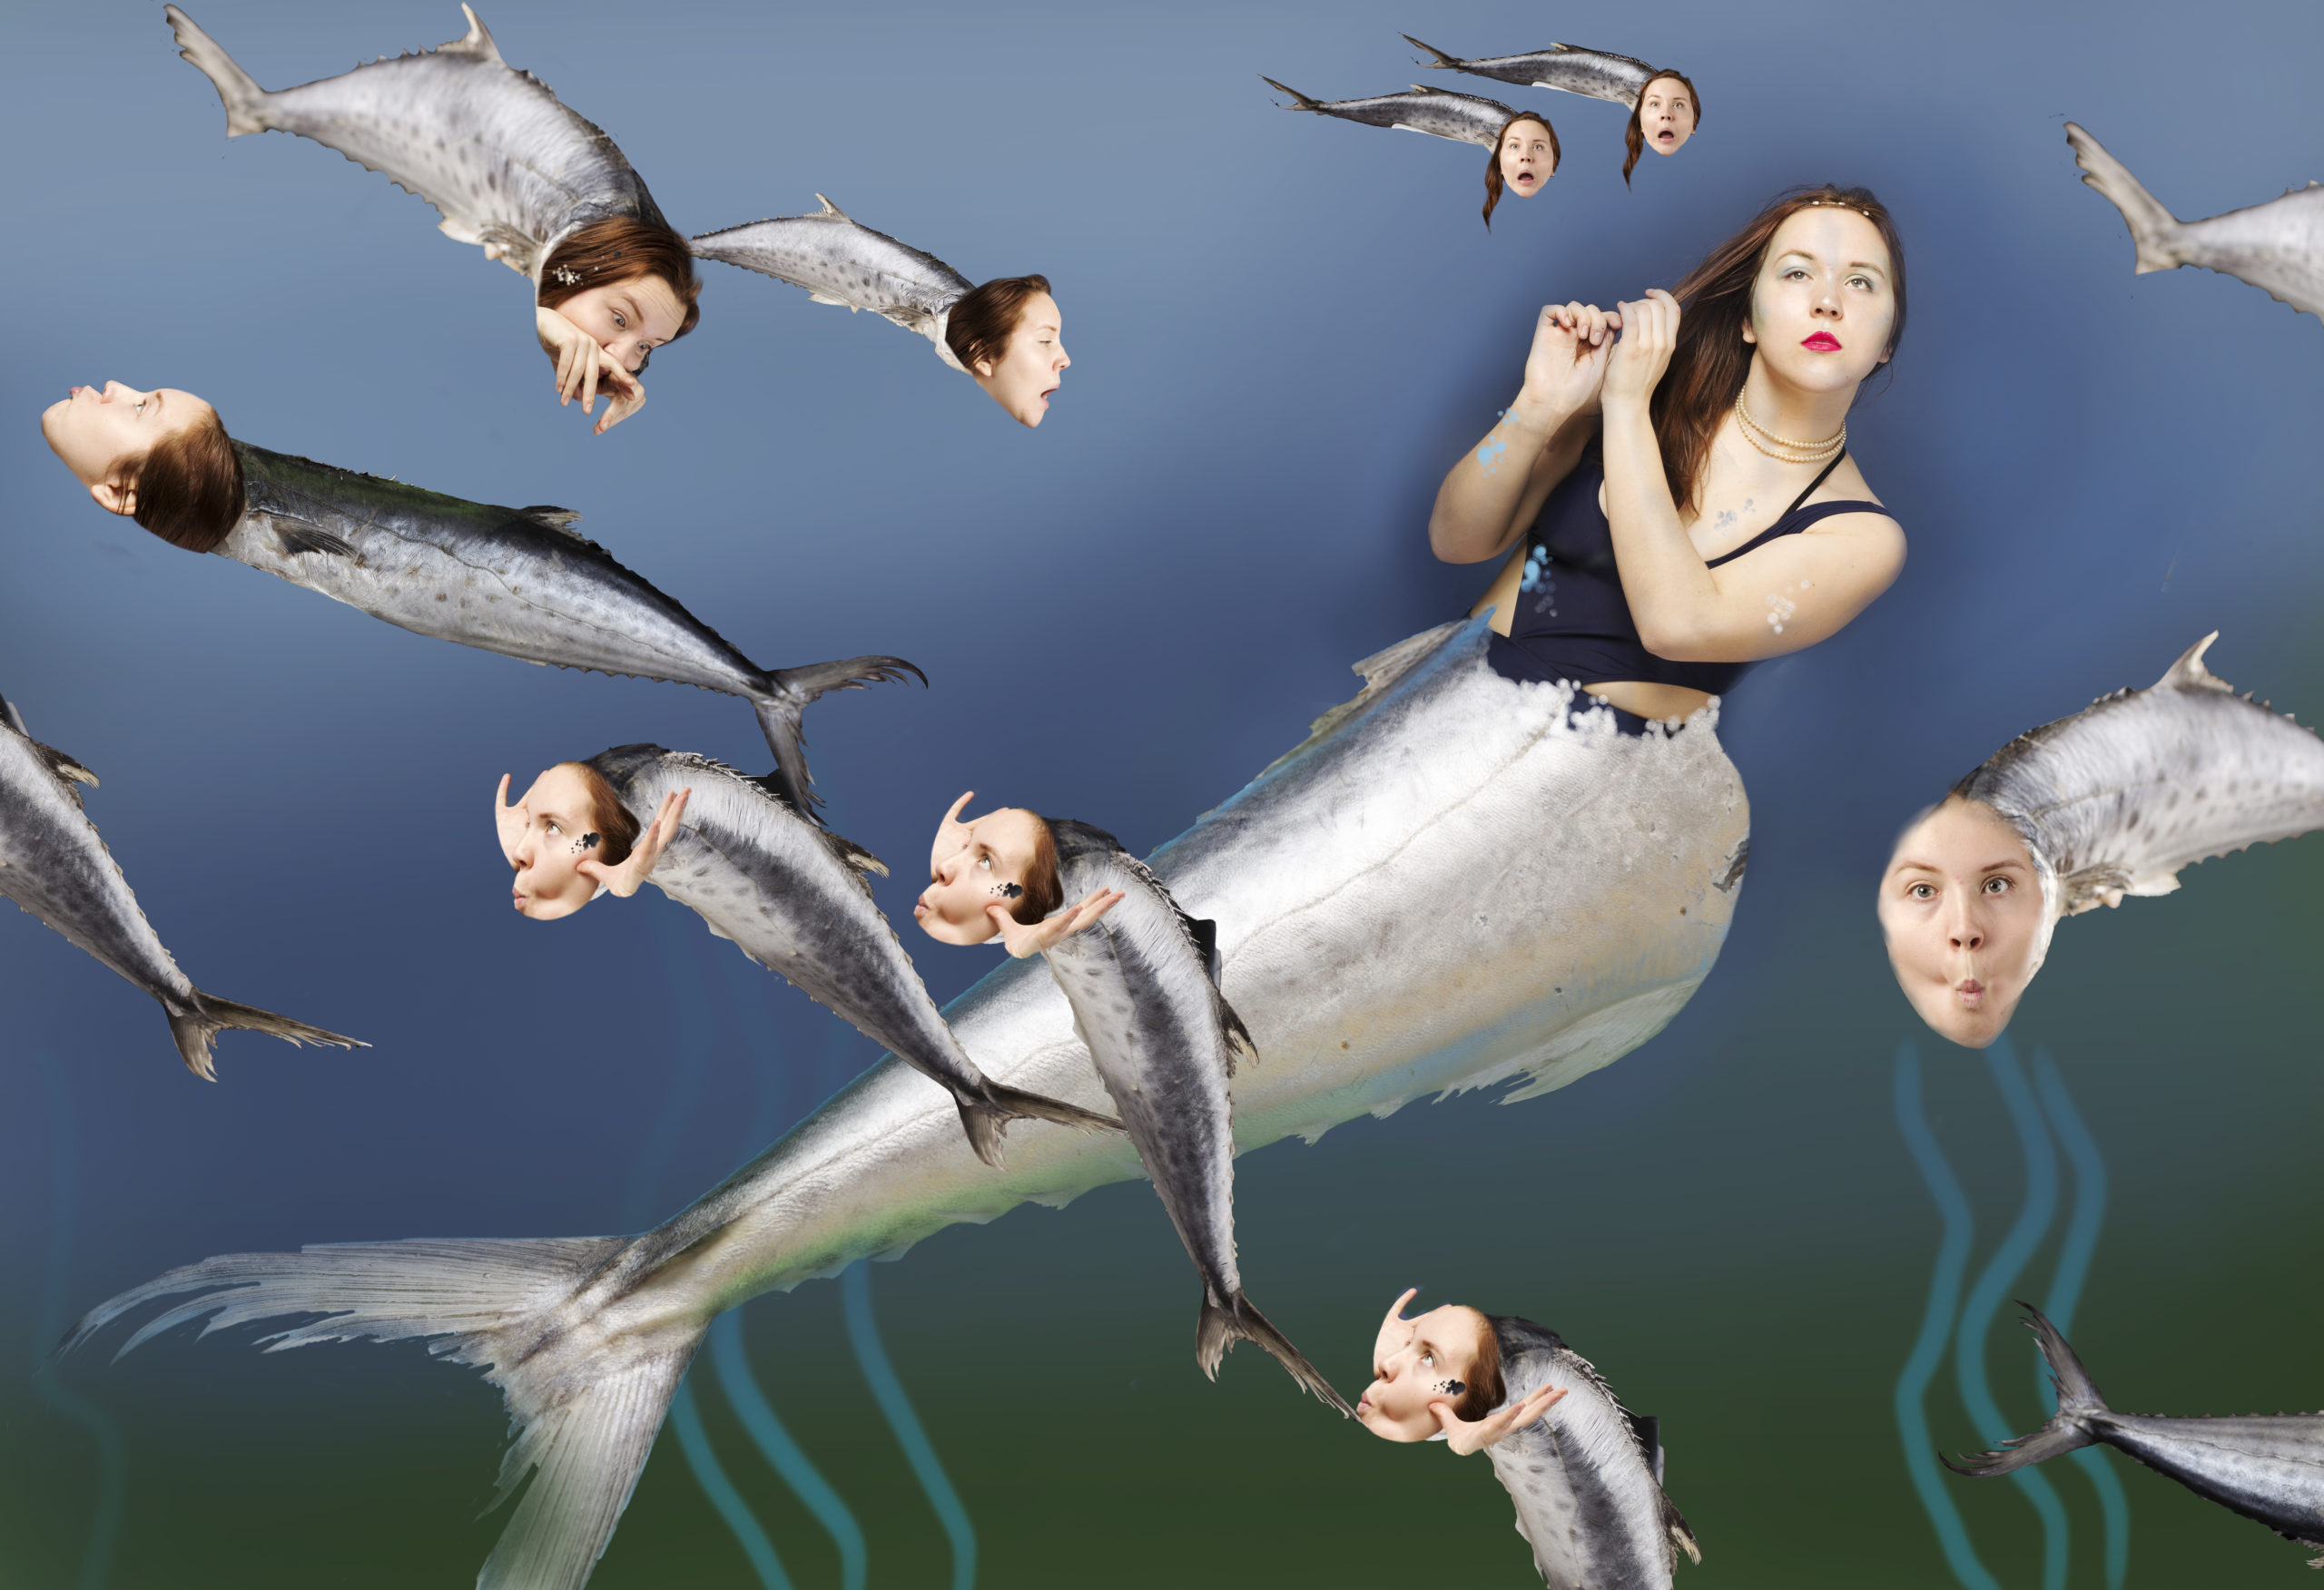 A photomontage depicting images of the artists edited with a fishtail over her legs, as well as edited over the faces of many fish in the background